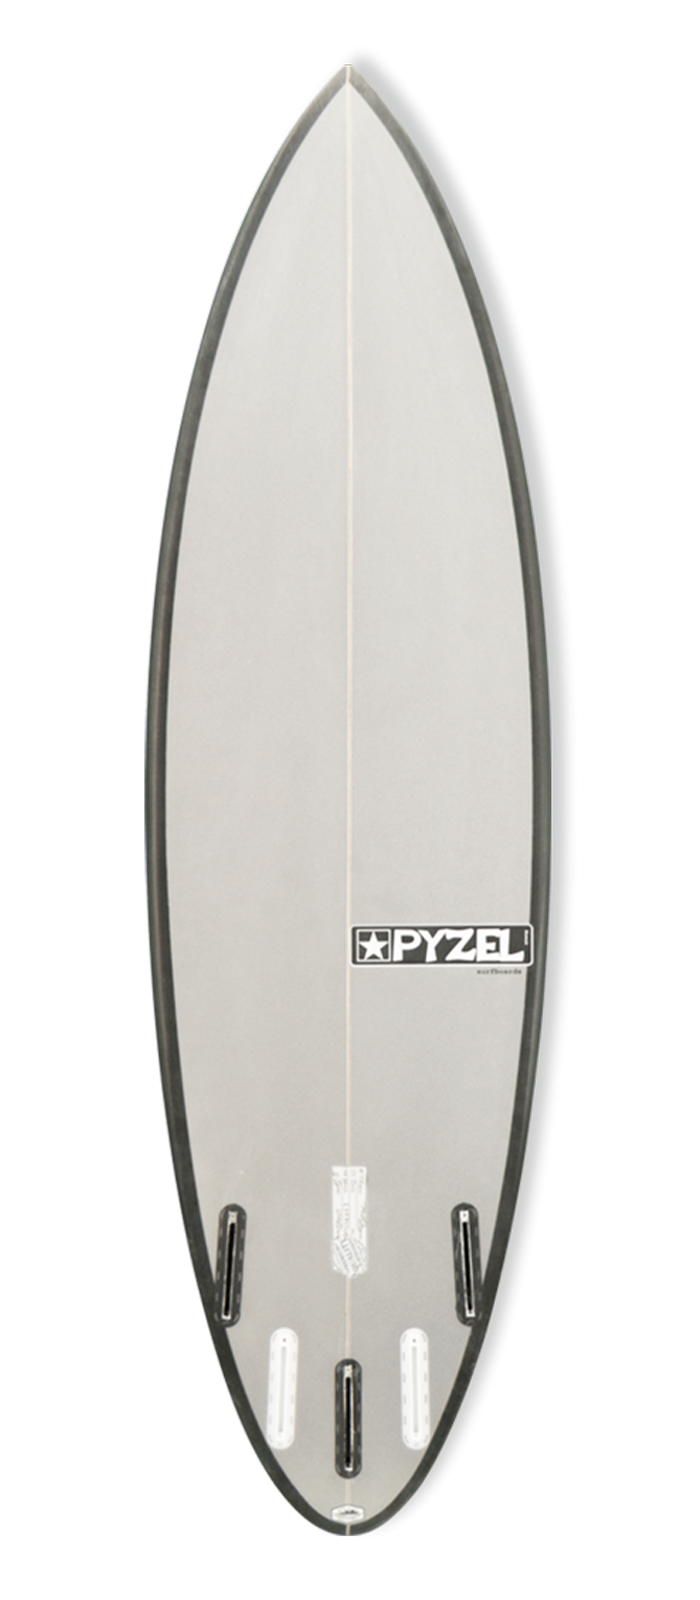 THE GHOST surfboard model bottom